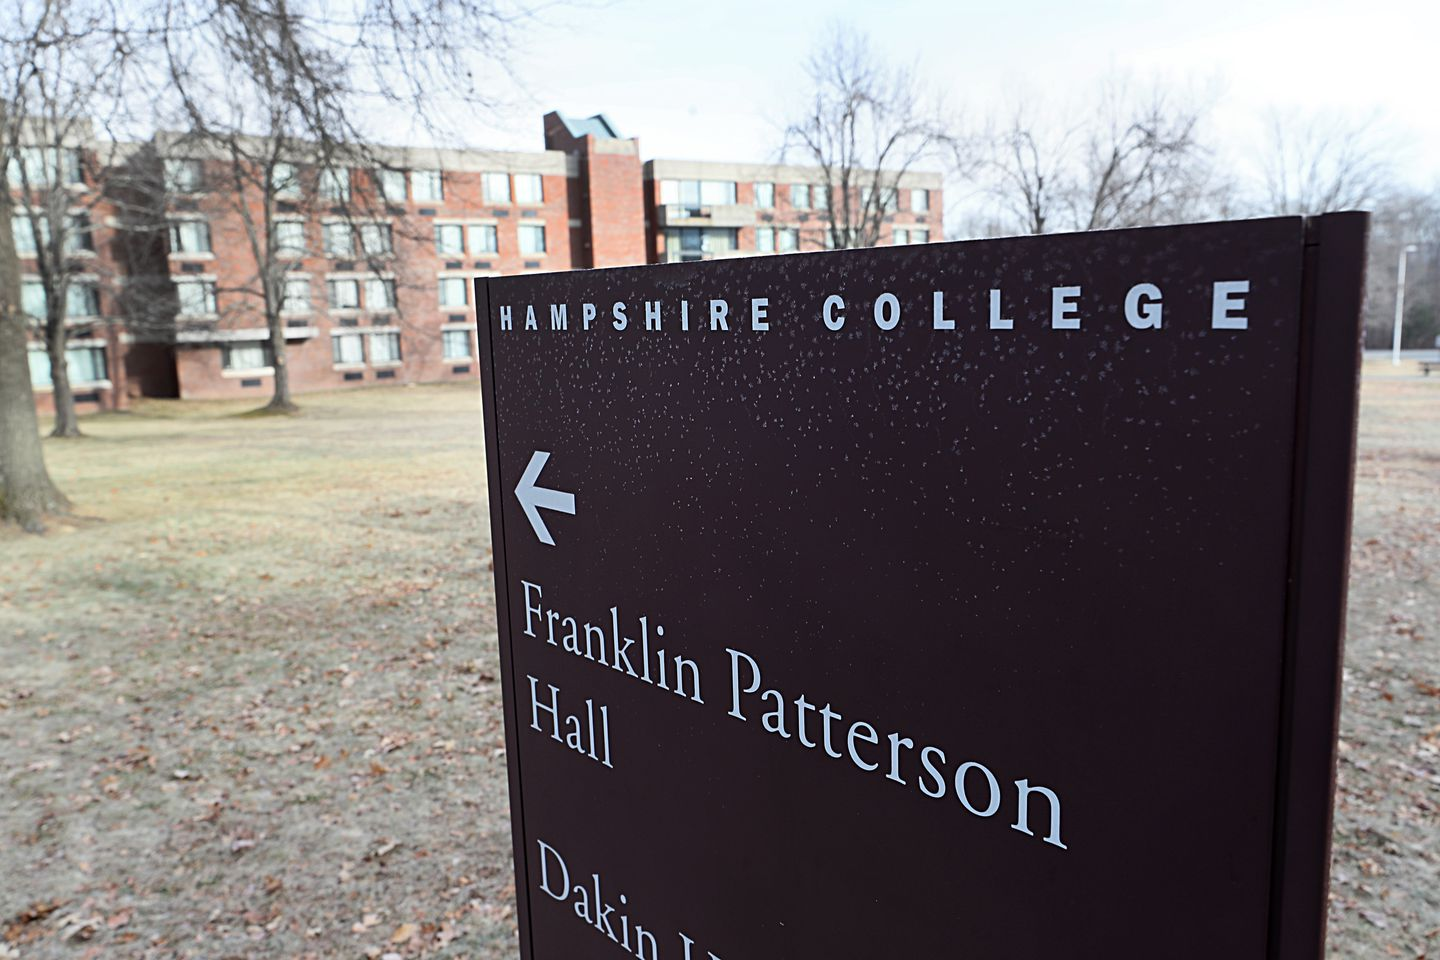 Emerson College Spring 2020.Hampshire College Hopes To Admit Freshmen Next Spring The